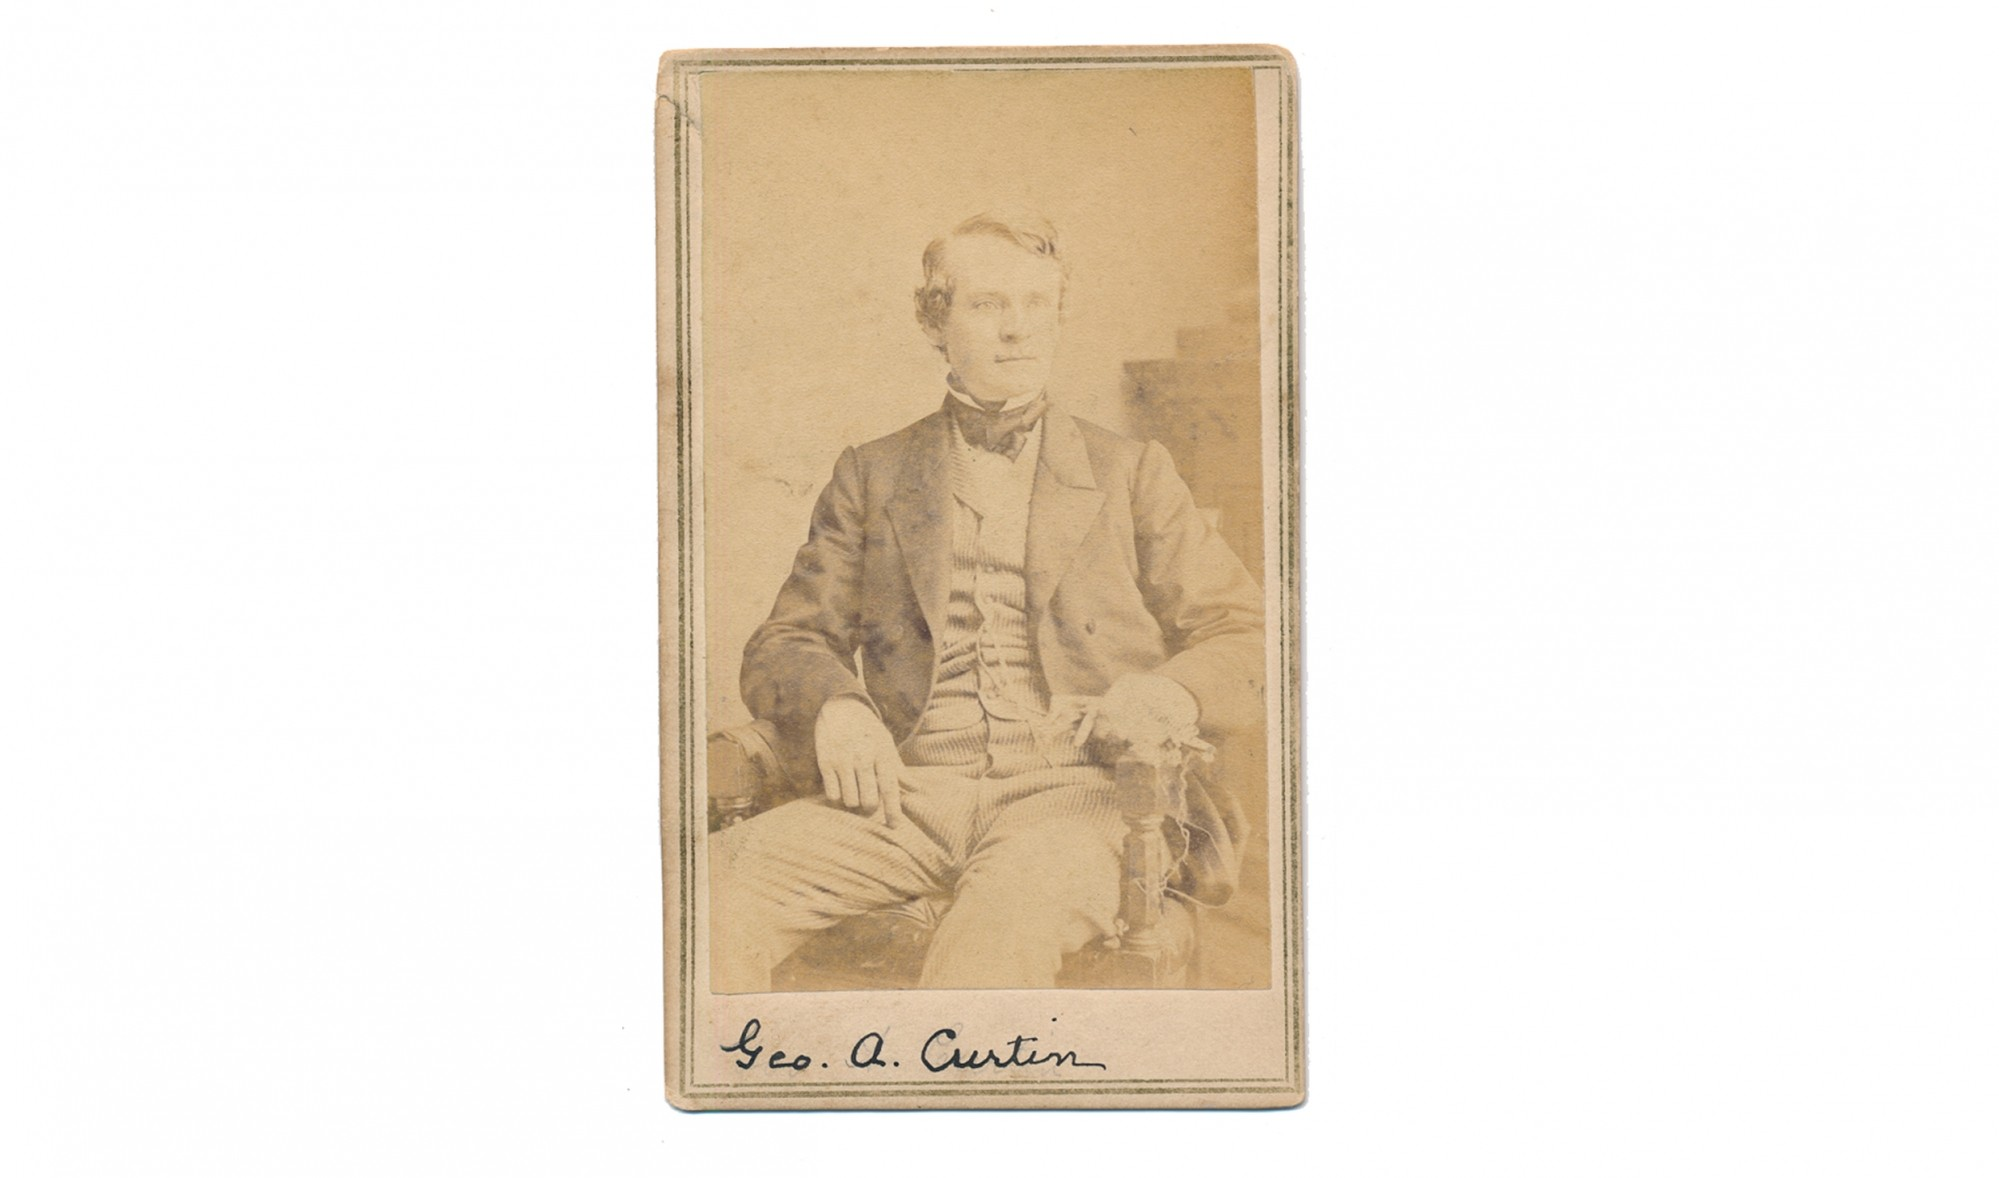 CDV OF ANDREW CURTIN, GOVERNOR OF PENNSYLVANIA